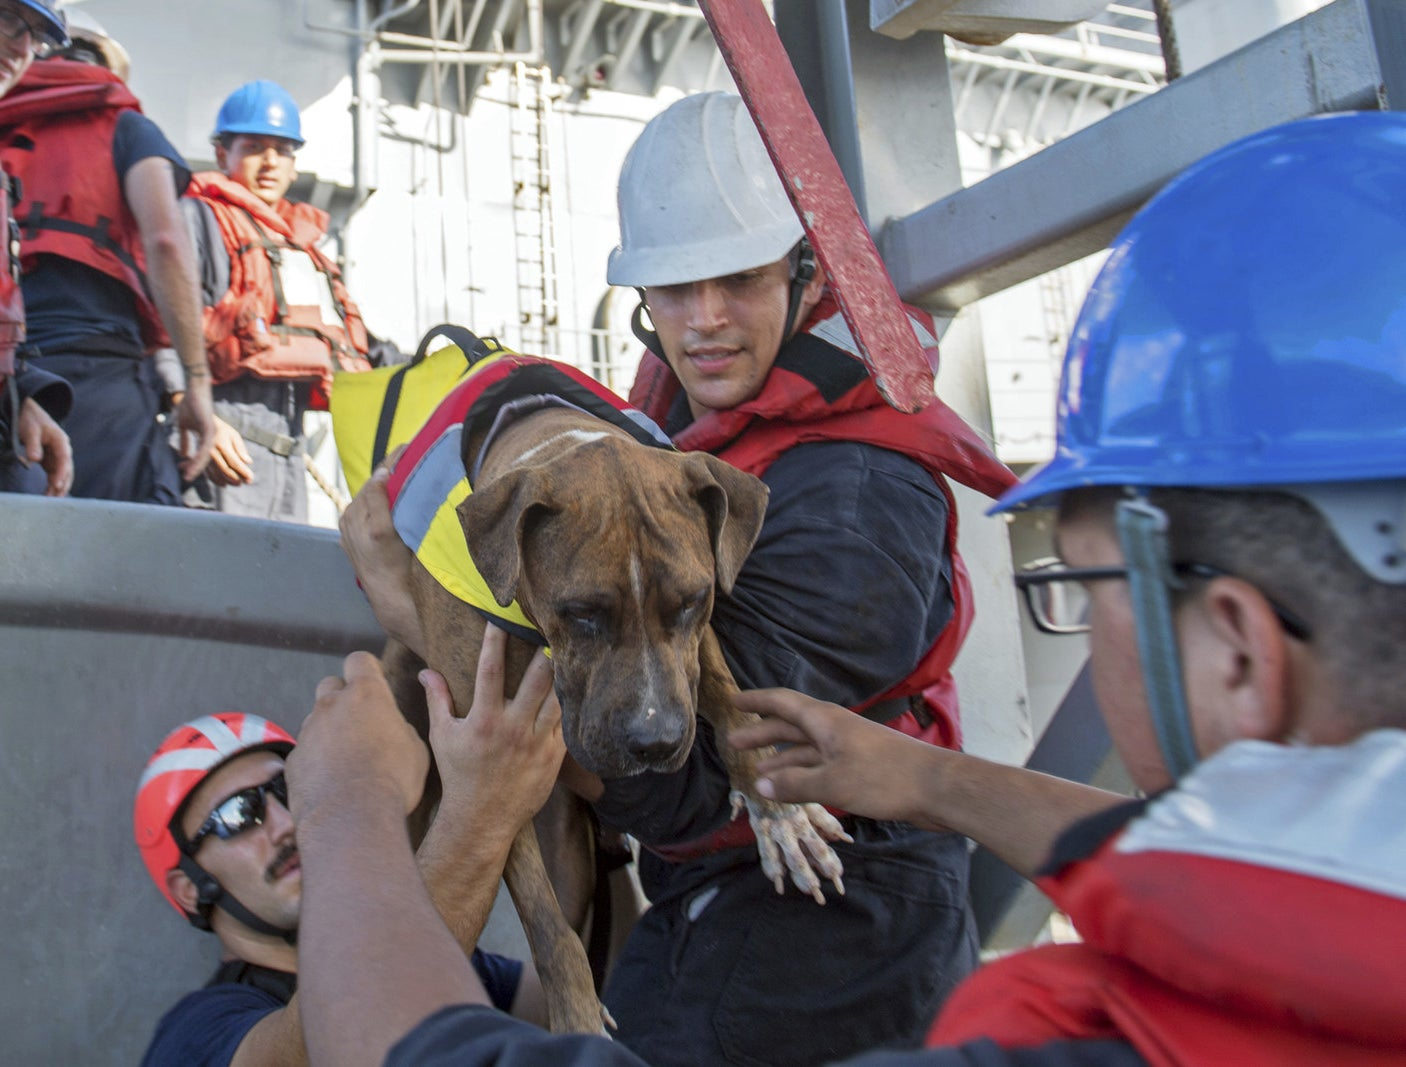 USS Ashland sailors help Zeus, one of two dogs accompanying two Honolulu women who were rescued on Oct. 25 after they were lost at sea for months while trying to sail from Hawaii to Tahiti.